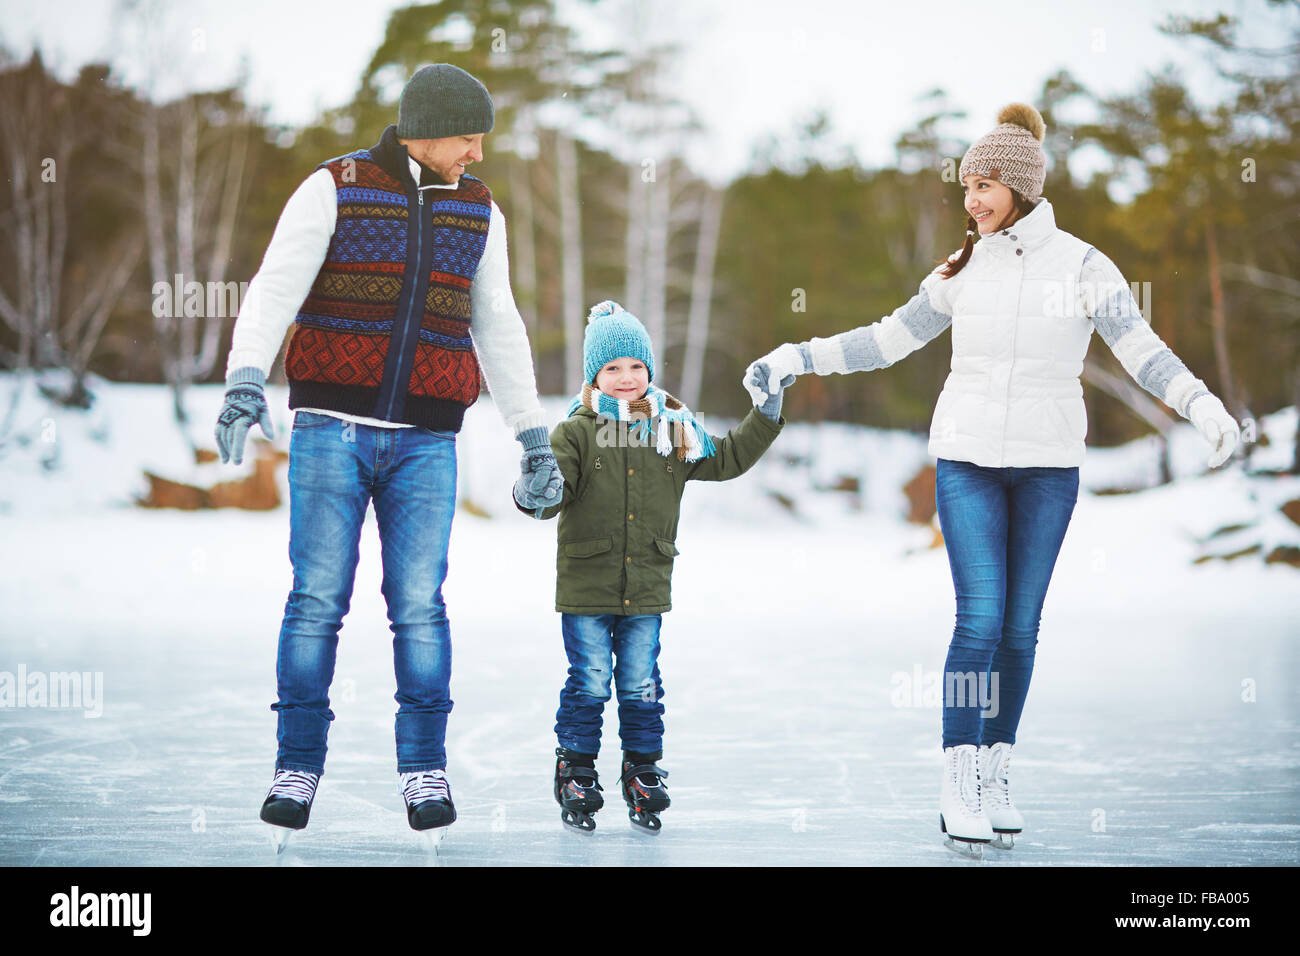 Young family holding hands and ice skating on rink - Stock Image